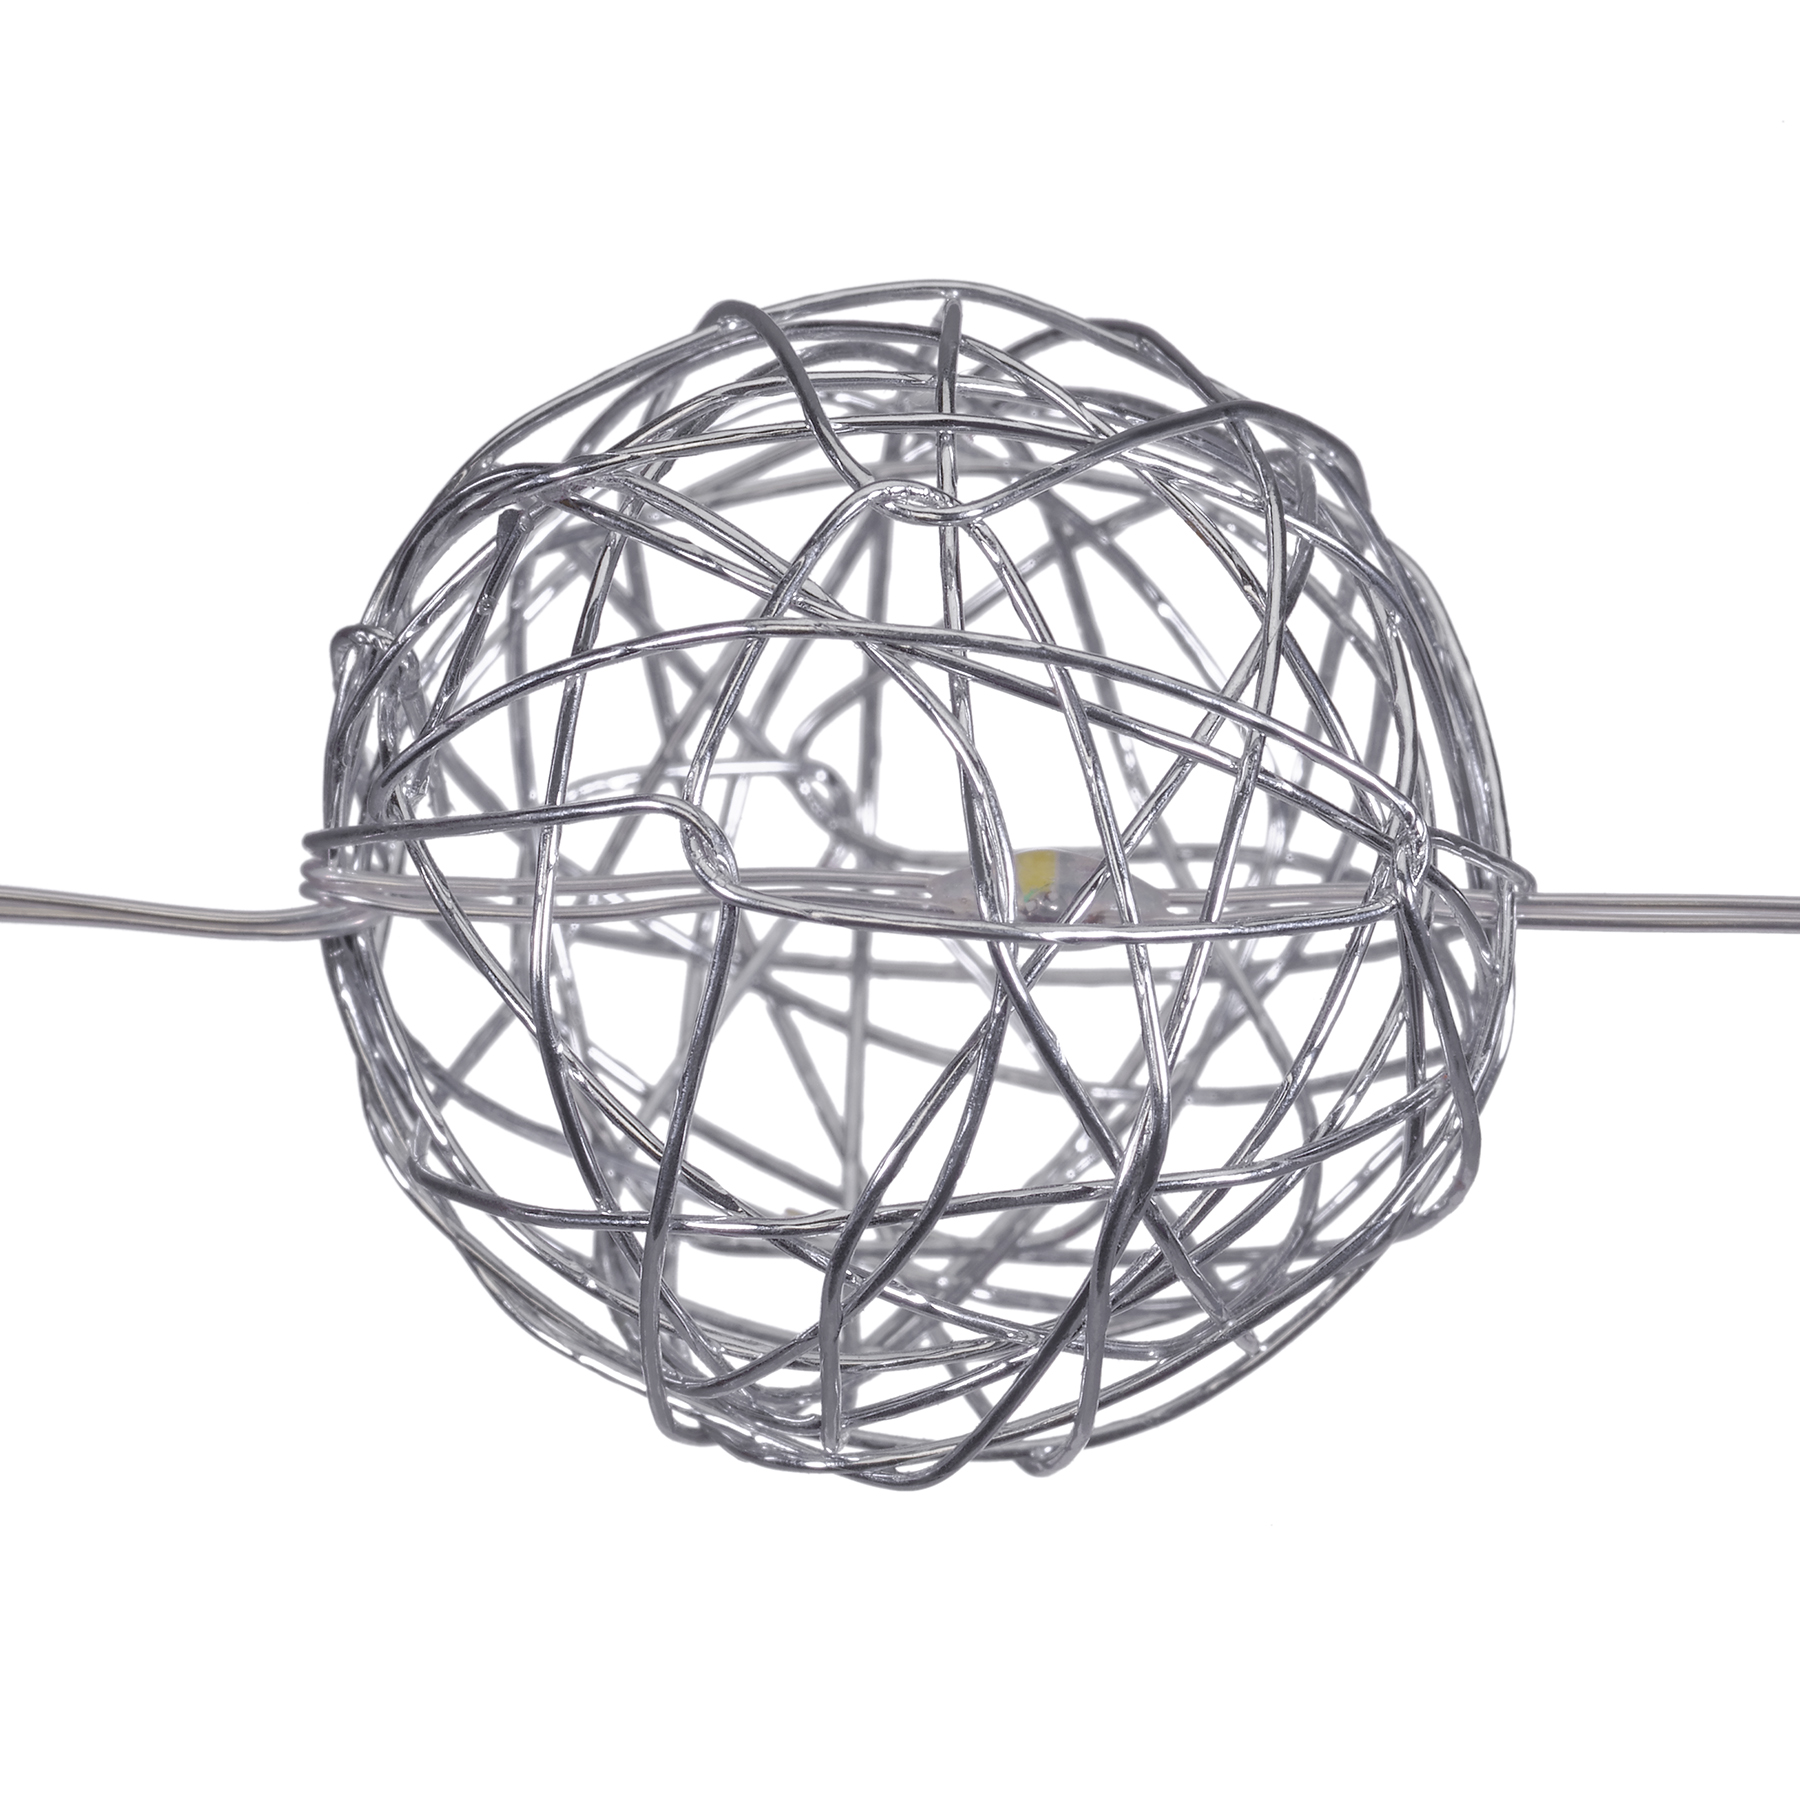 Buy the Silver Wire Ball LED Lights By Ashland™ at Michaels